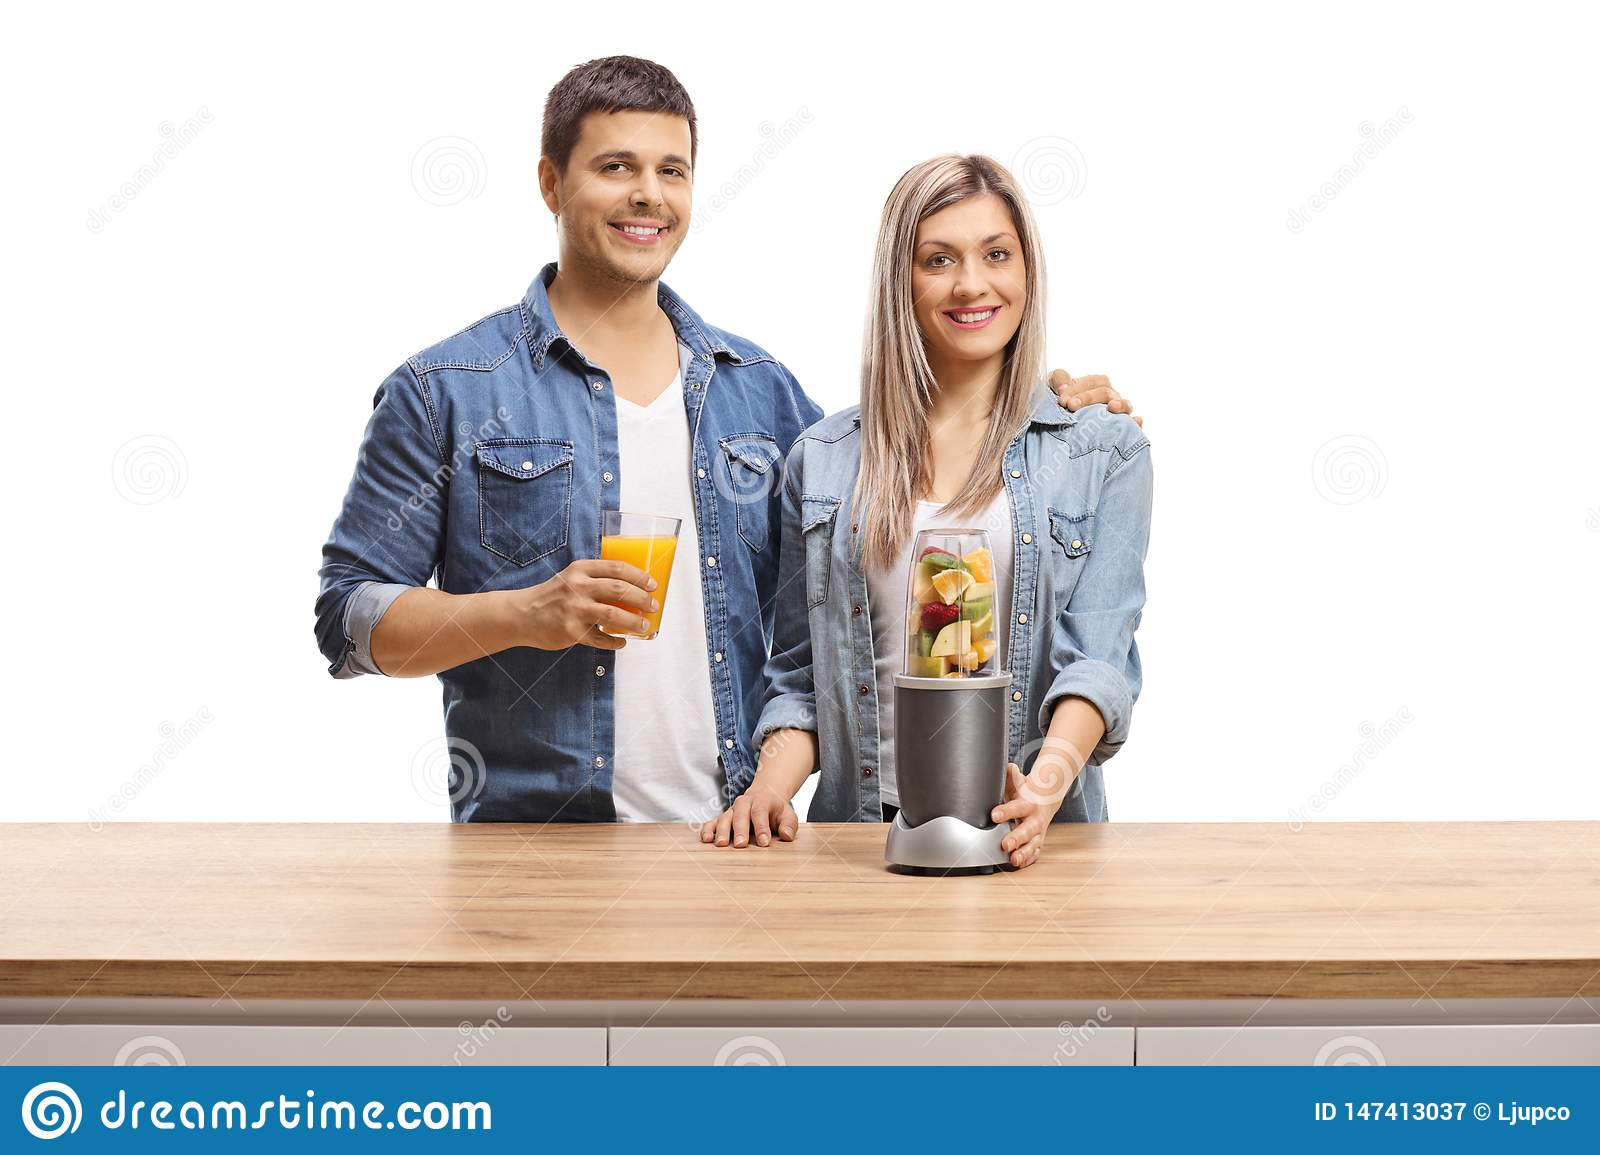 Young man and woman with fruits in a blender and a glass of juice smiling at the camera